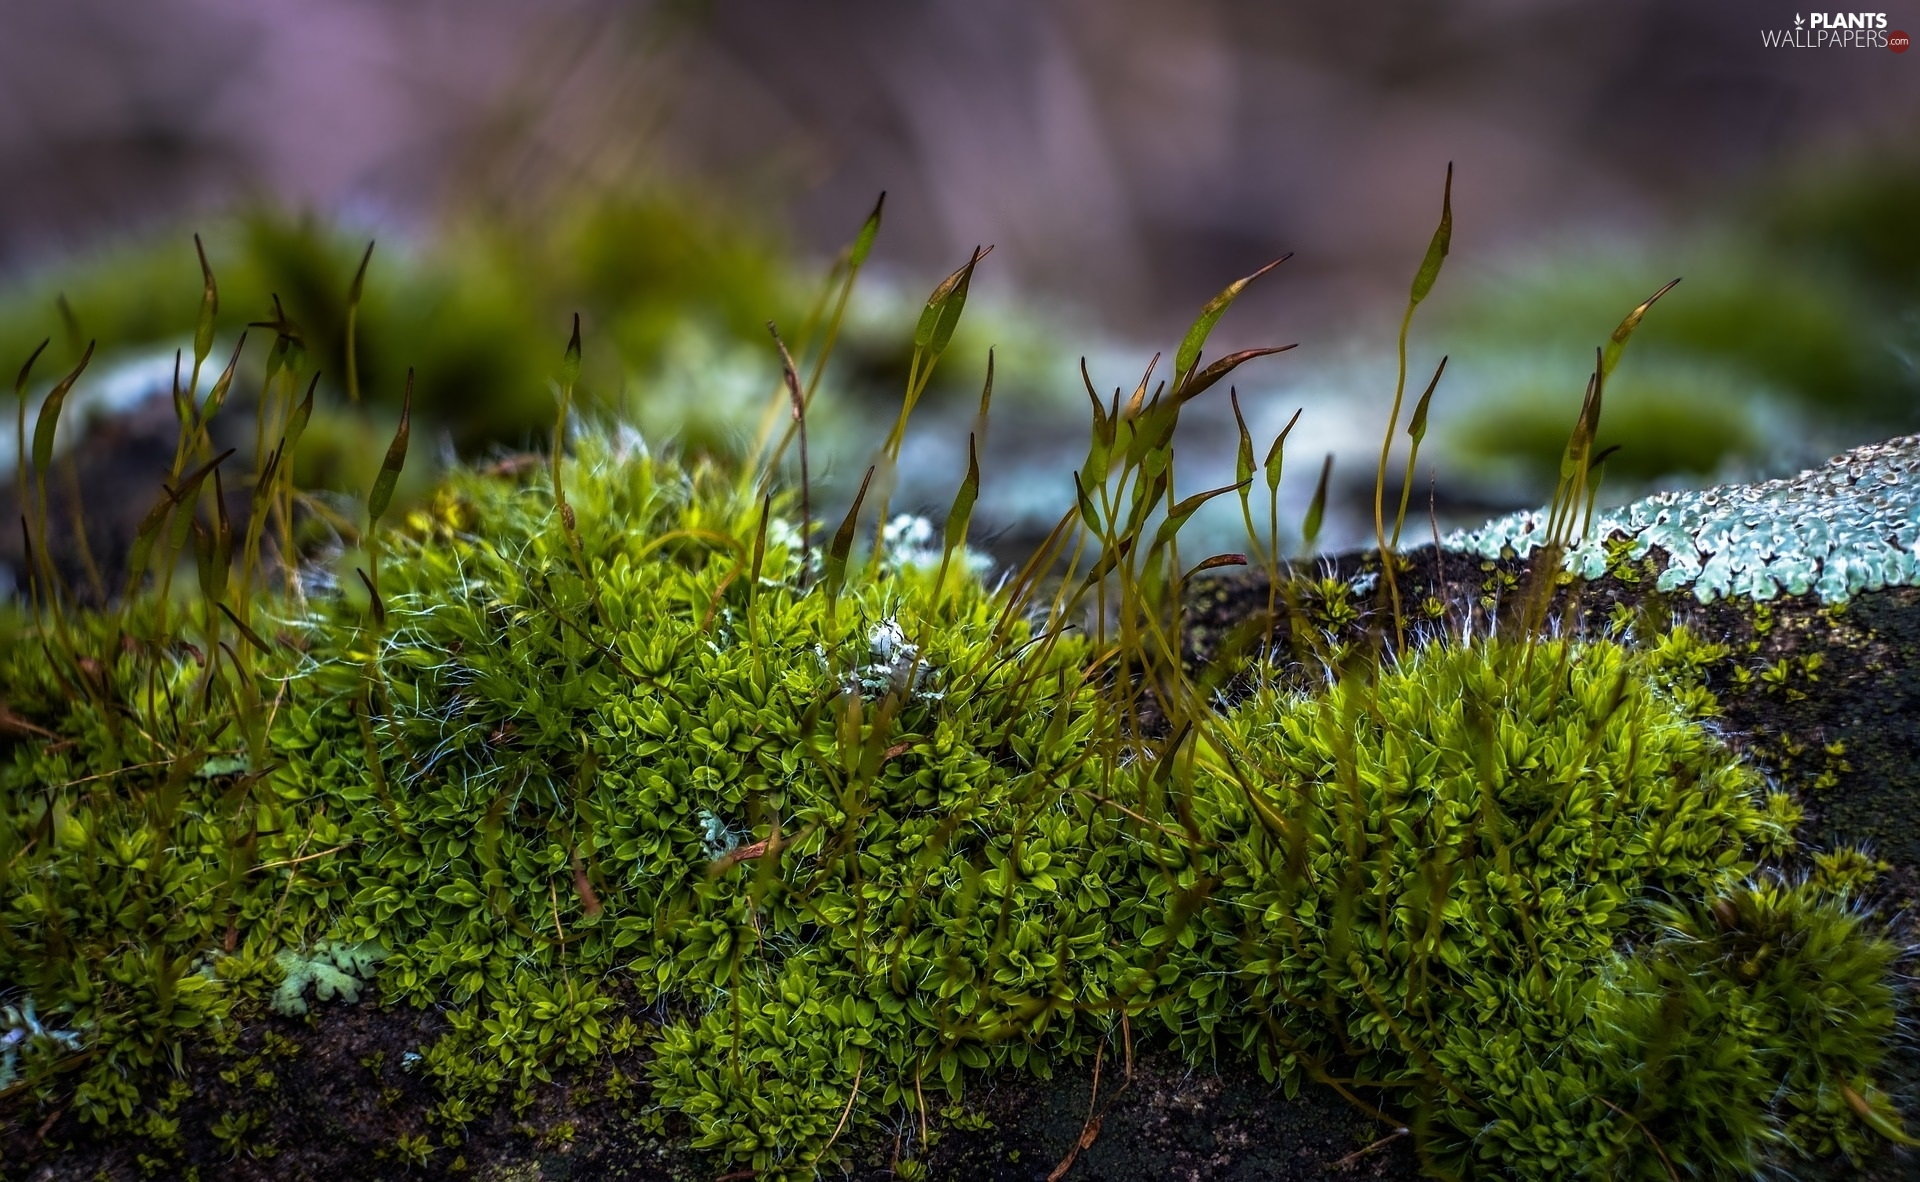 fuzzy, background, blades, Close, Moss